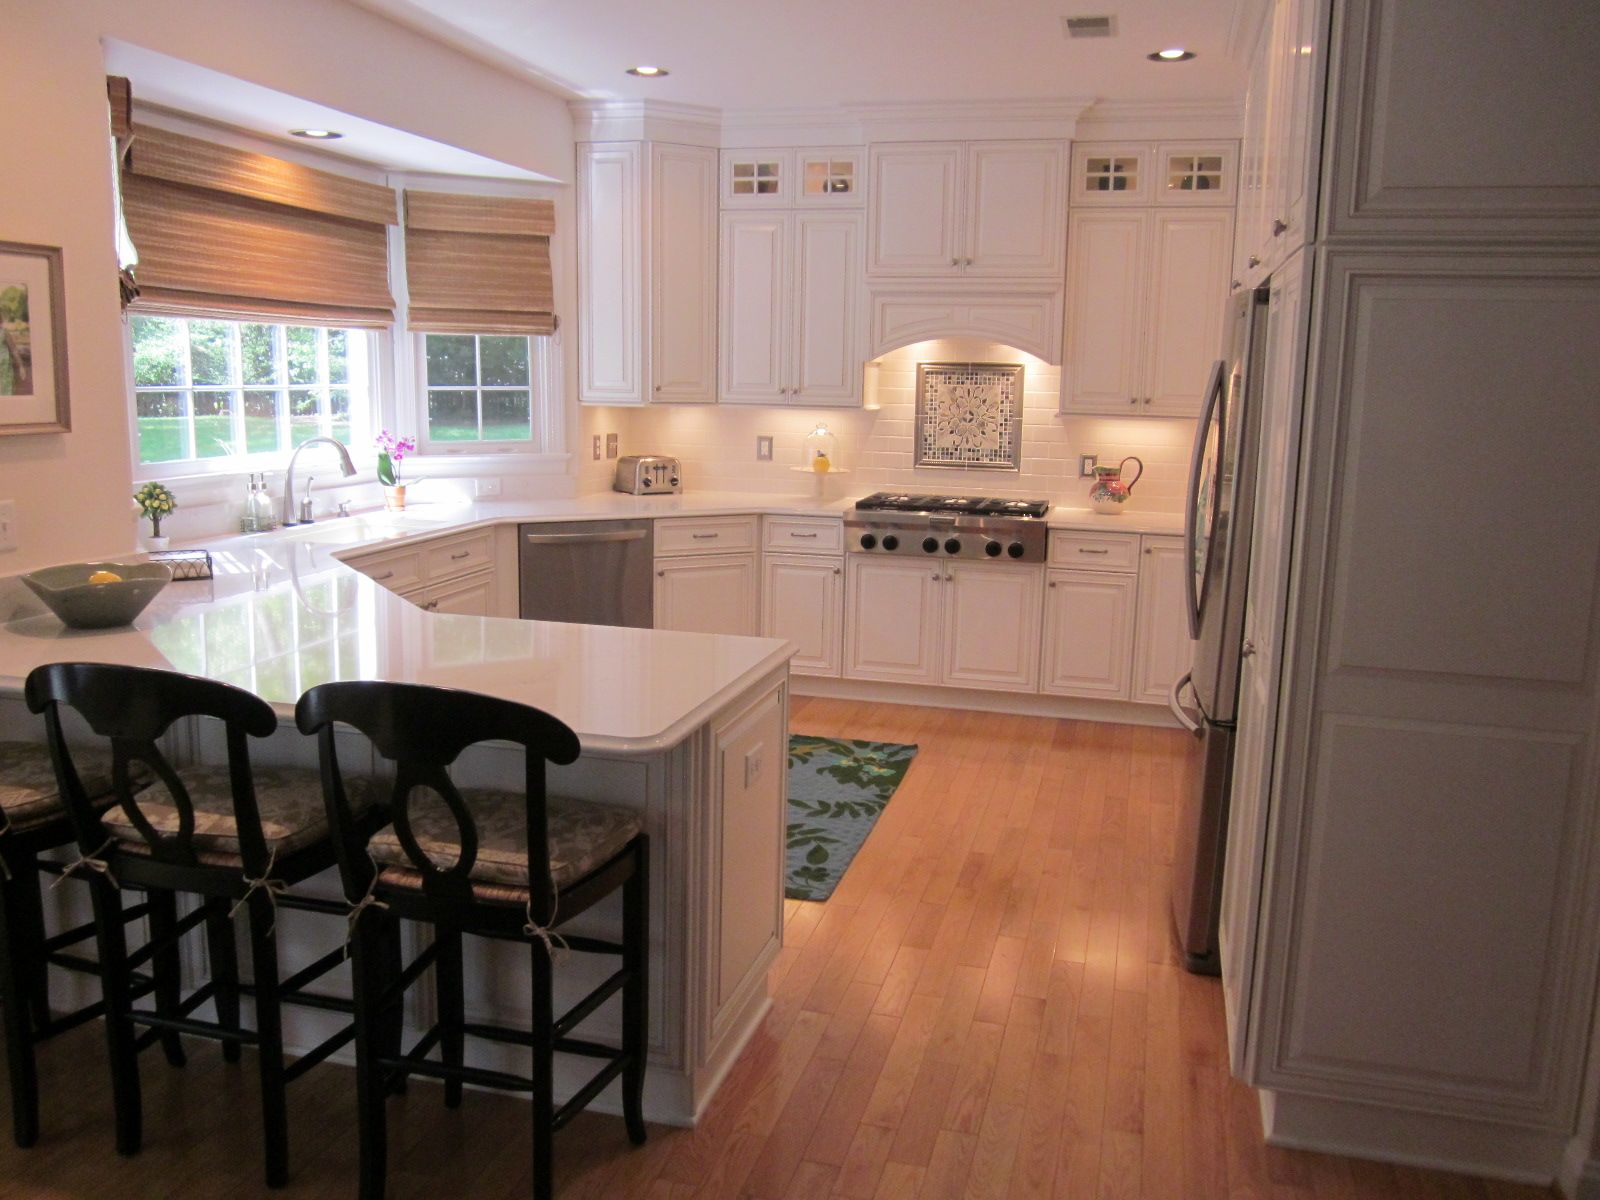 Great Brighton Cabinetry Is Quality Wood Species: Maple, Door Style: Churchill,  Finish: